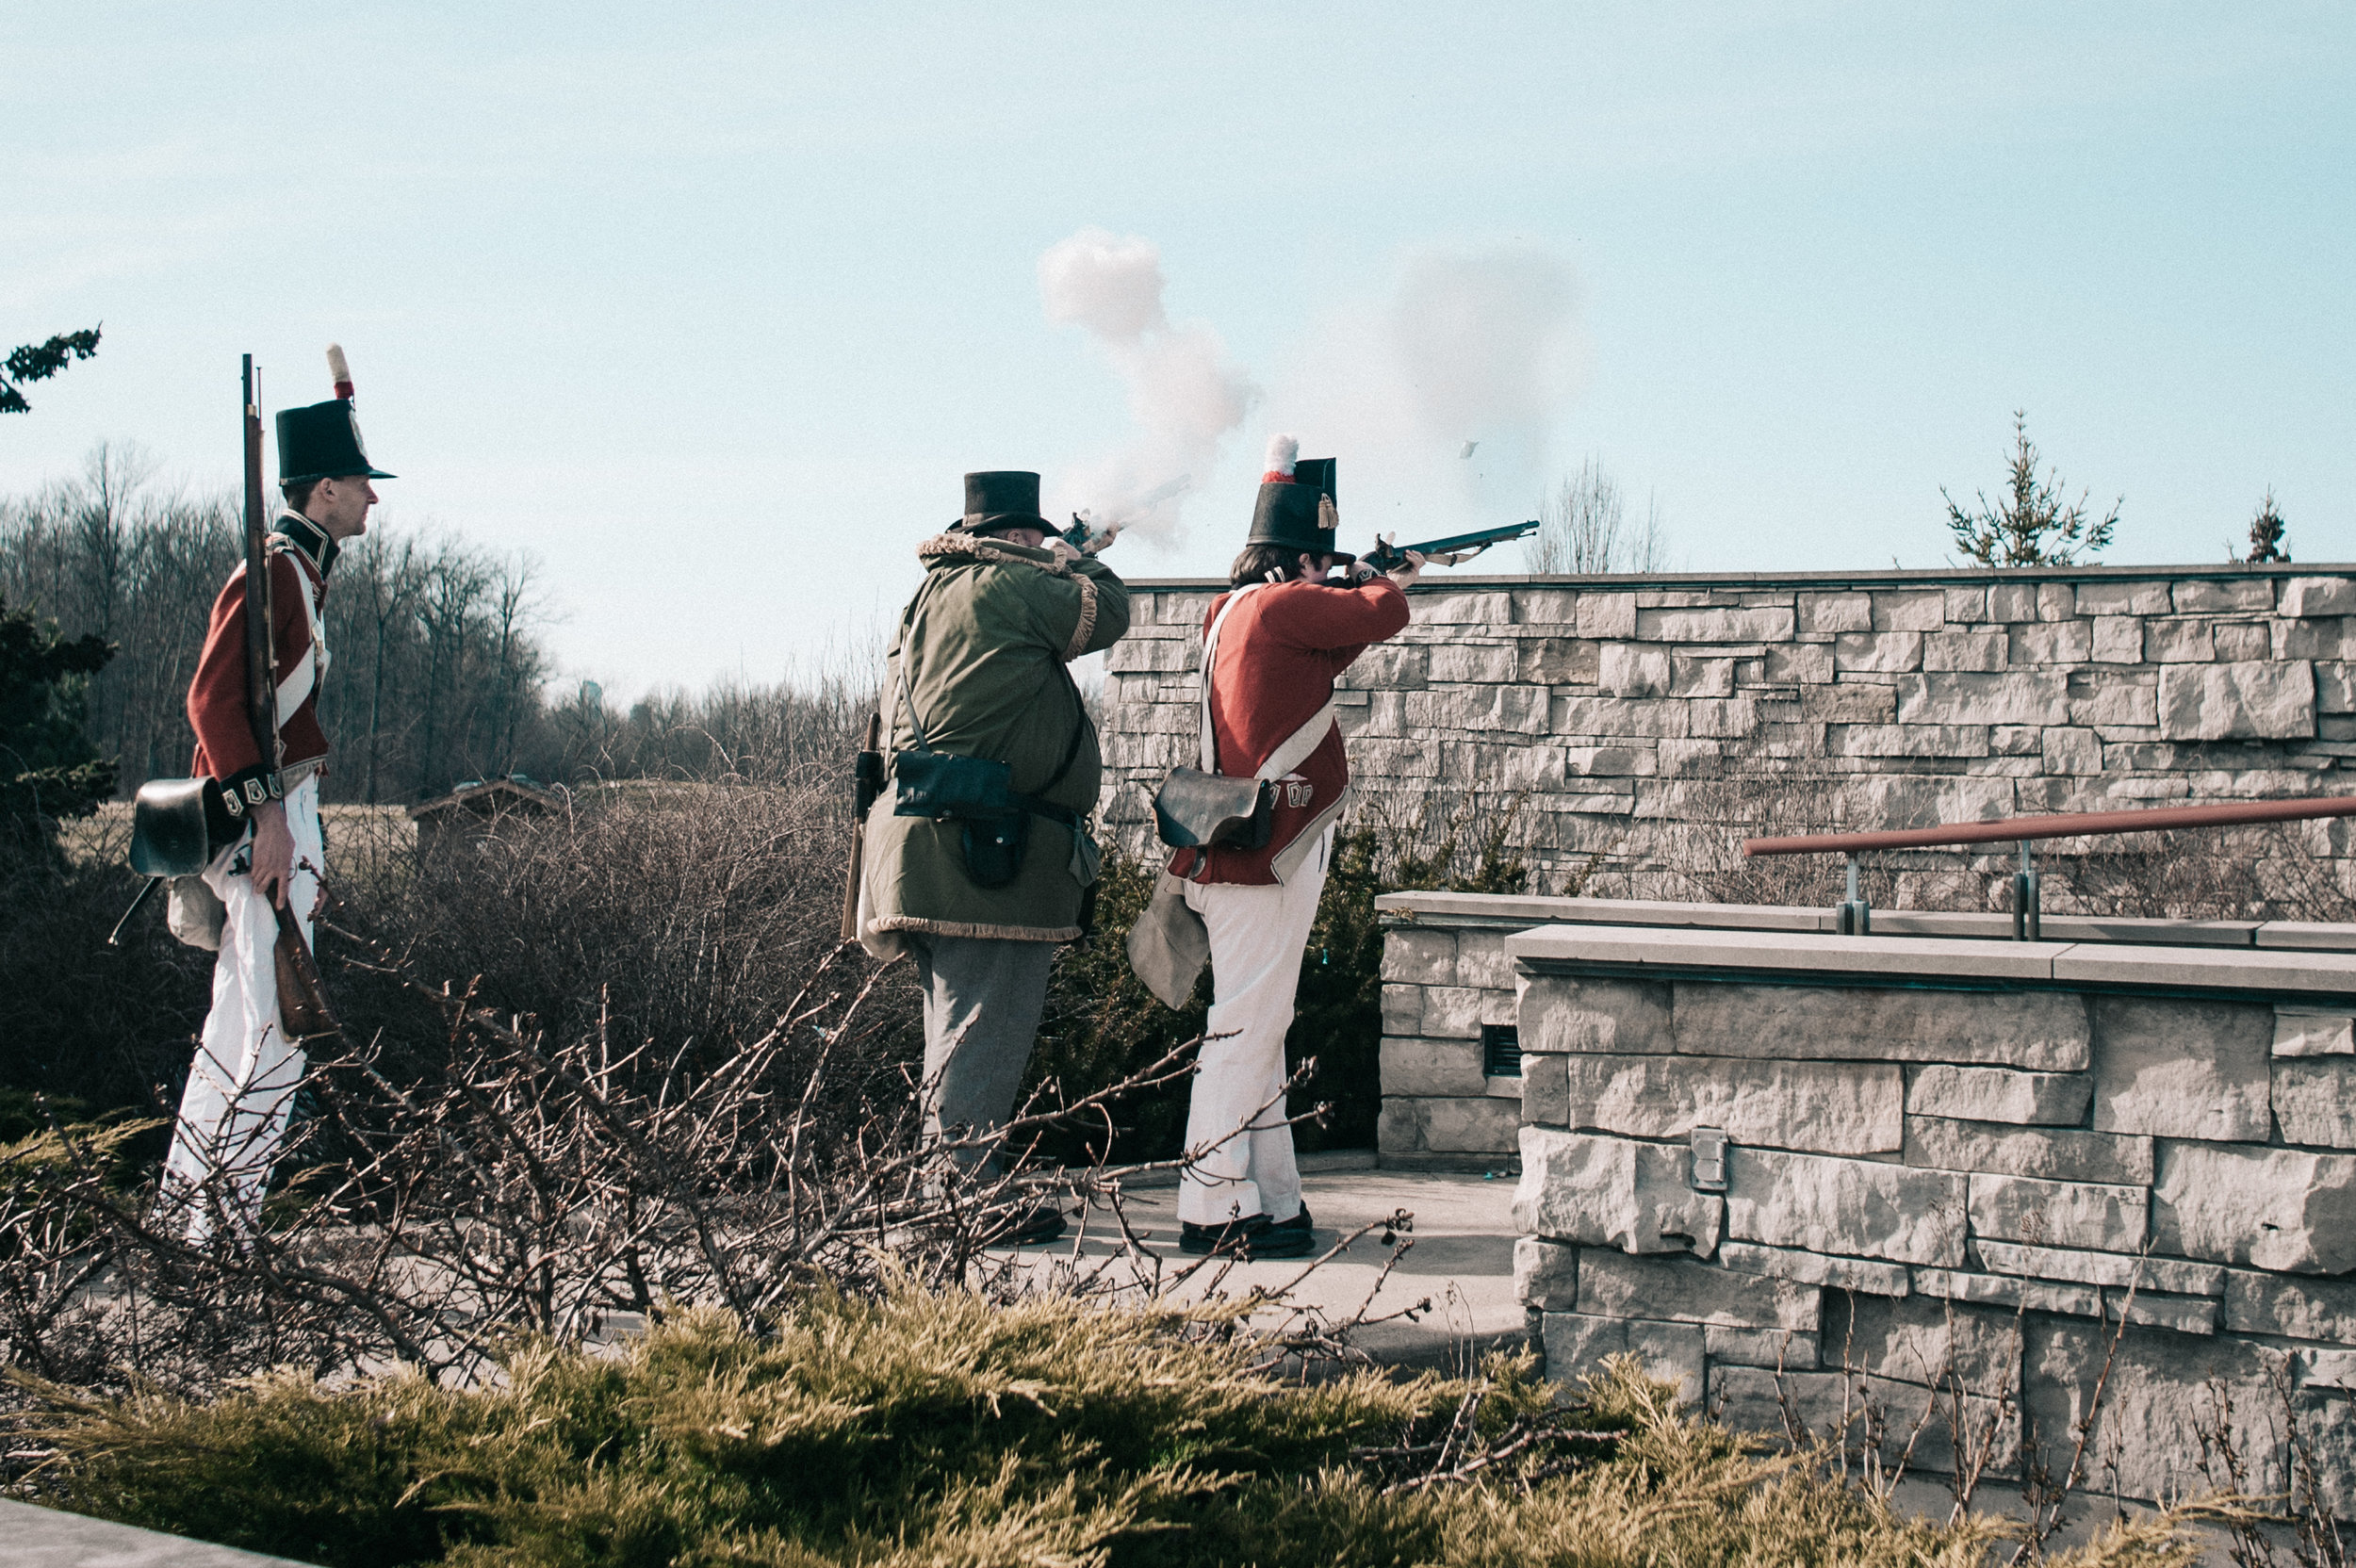 An authentic 1812 musket presentation to welcome the bride and groom!!